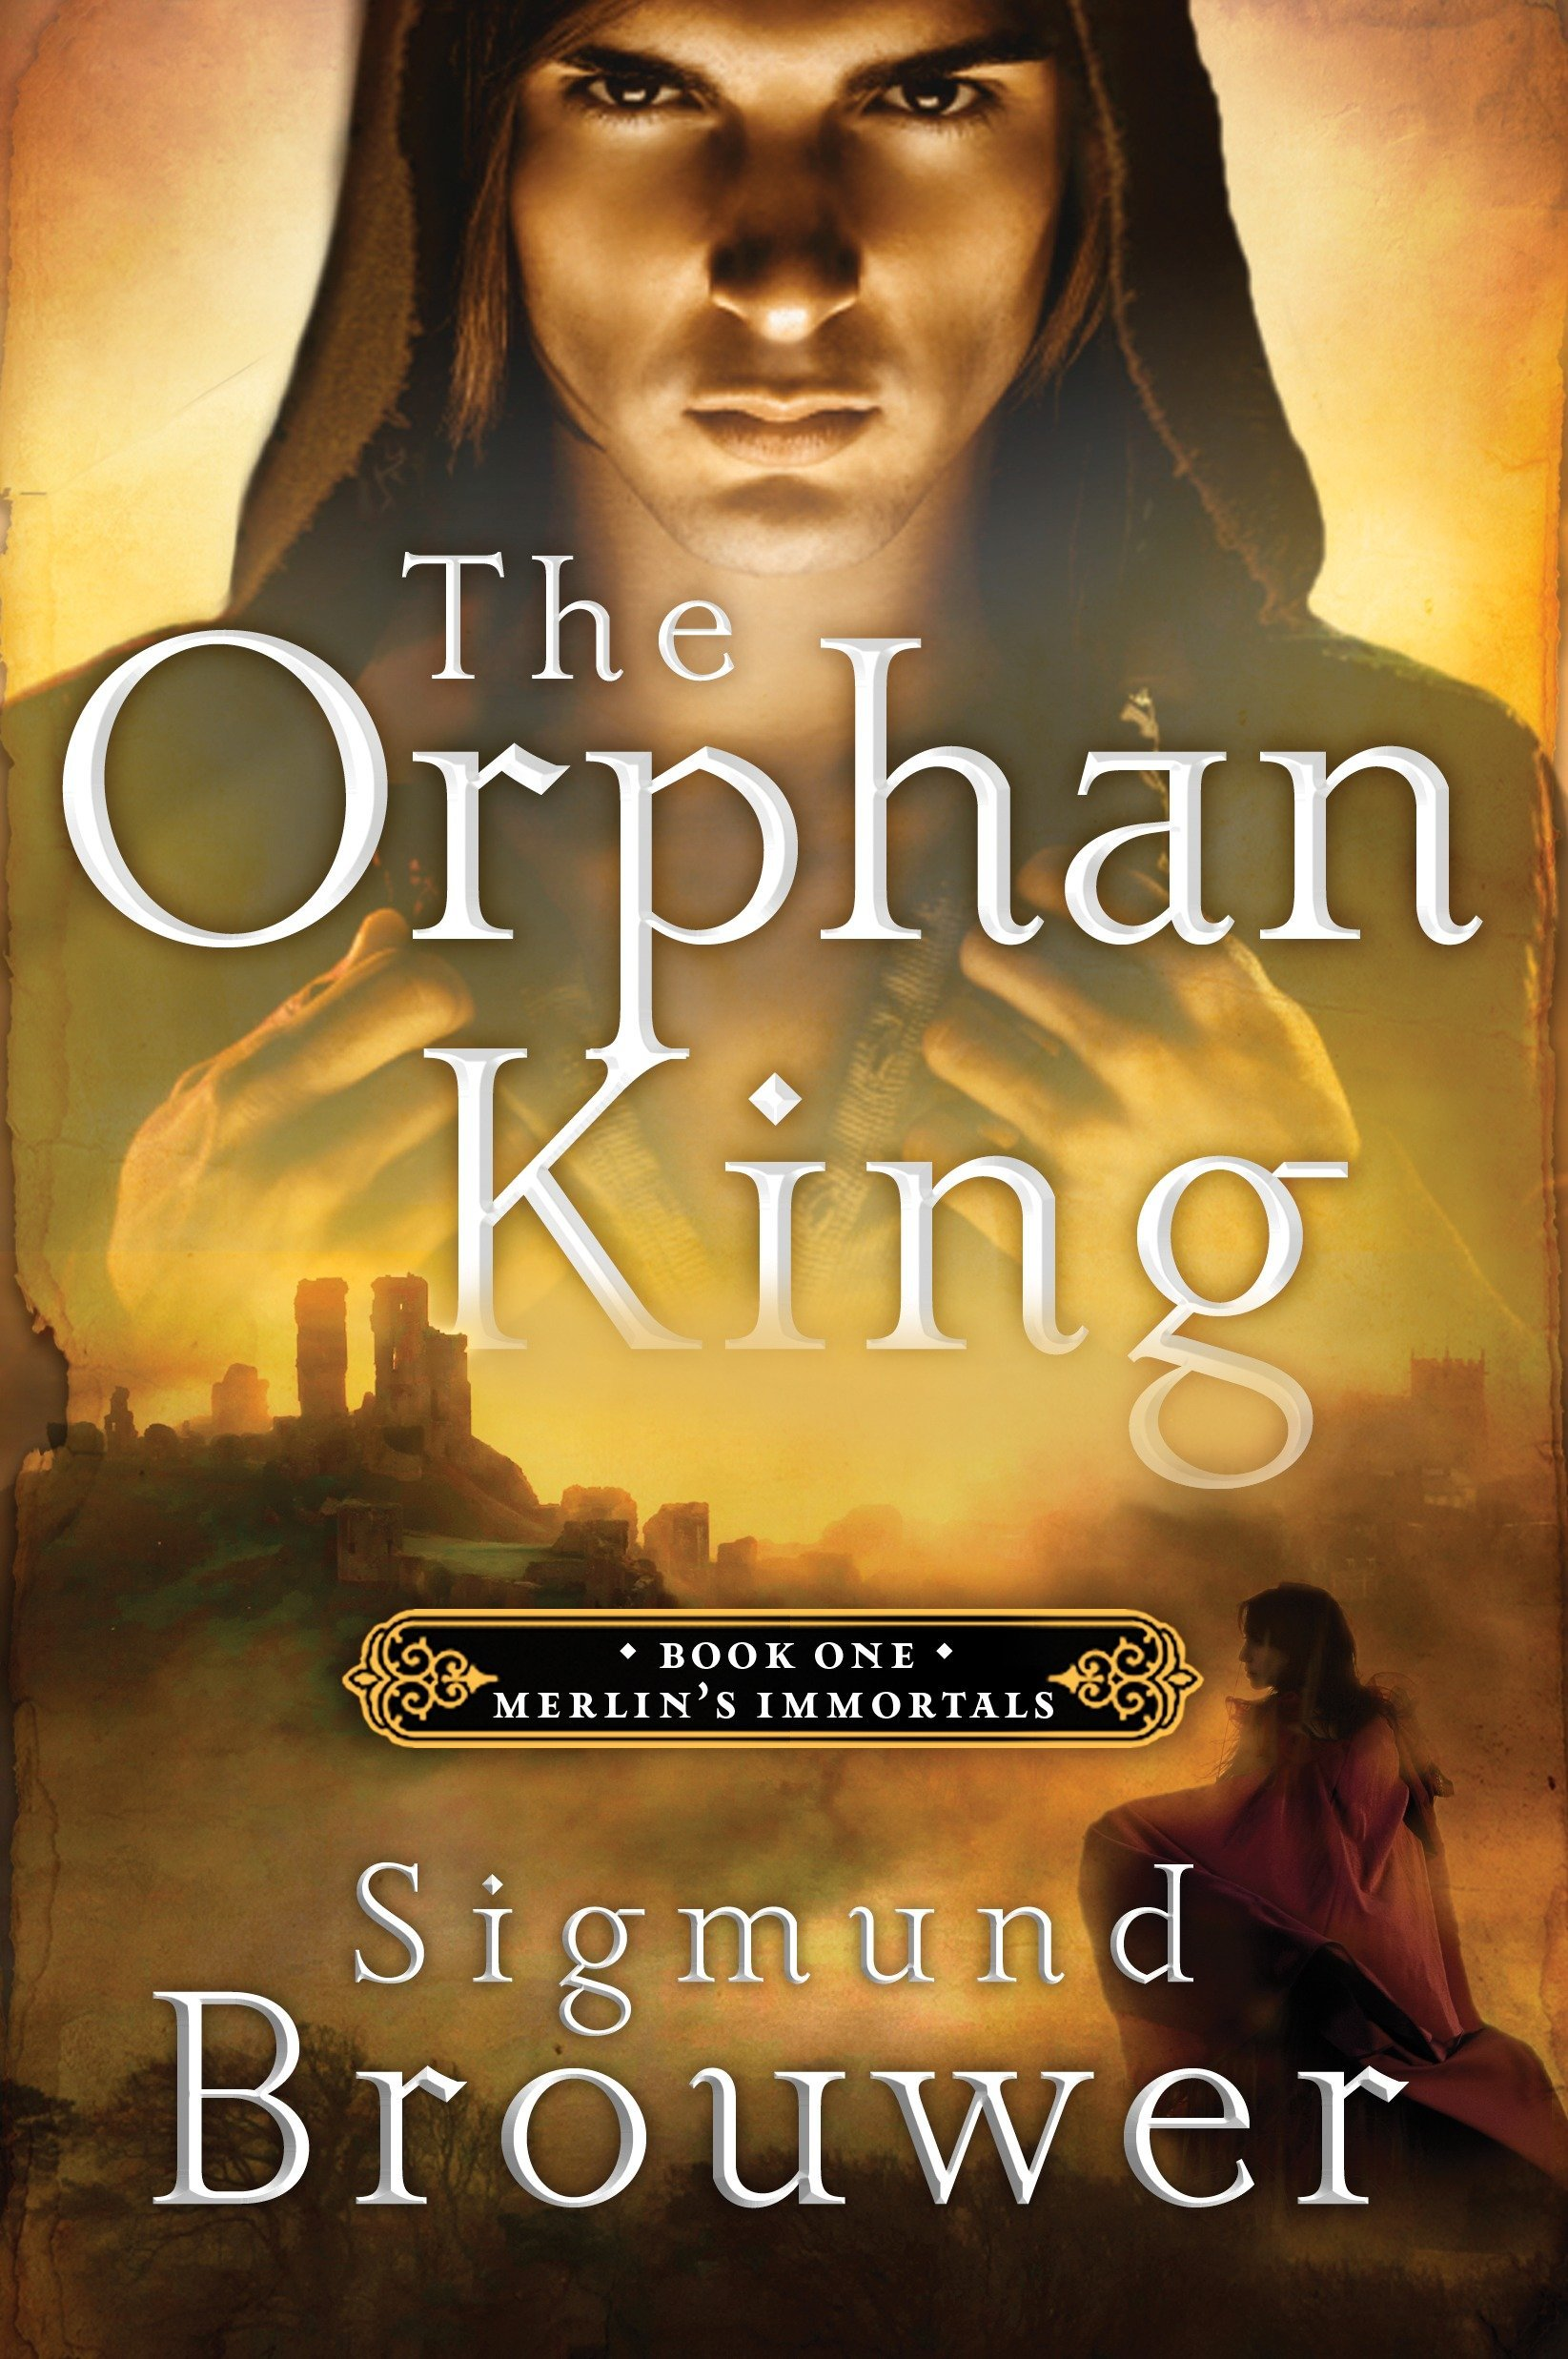 The Orphan King: Book 1 in the Merlin's Immortals series PDF ePub ebook